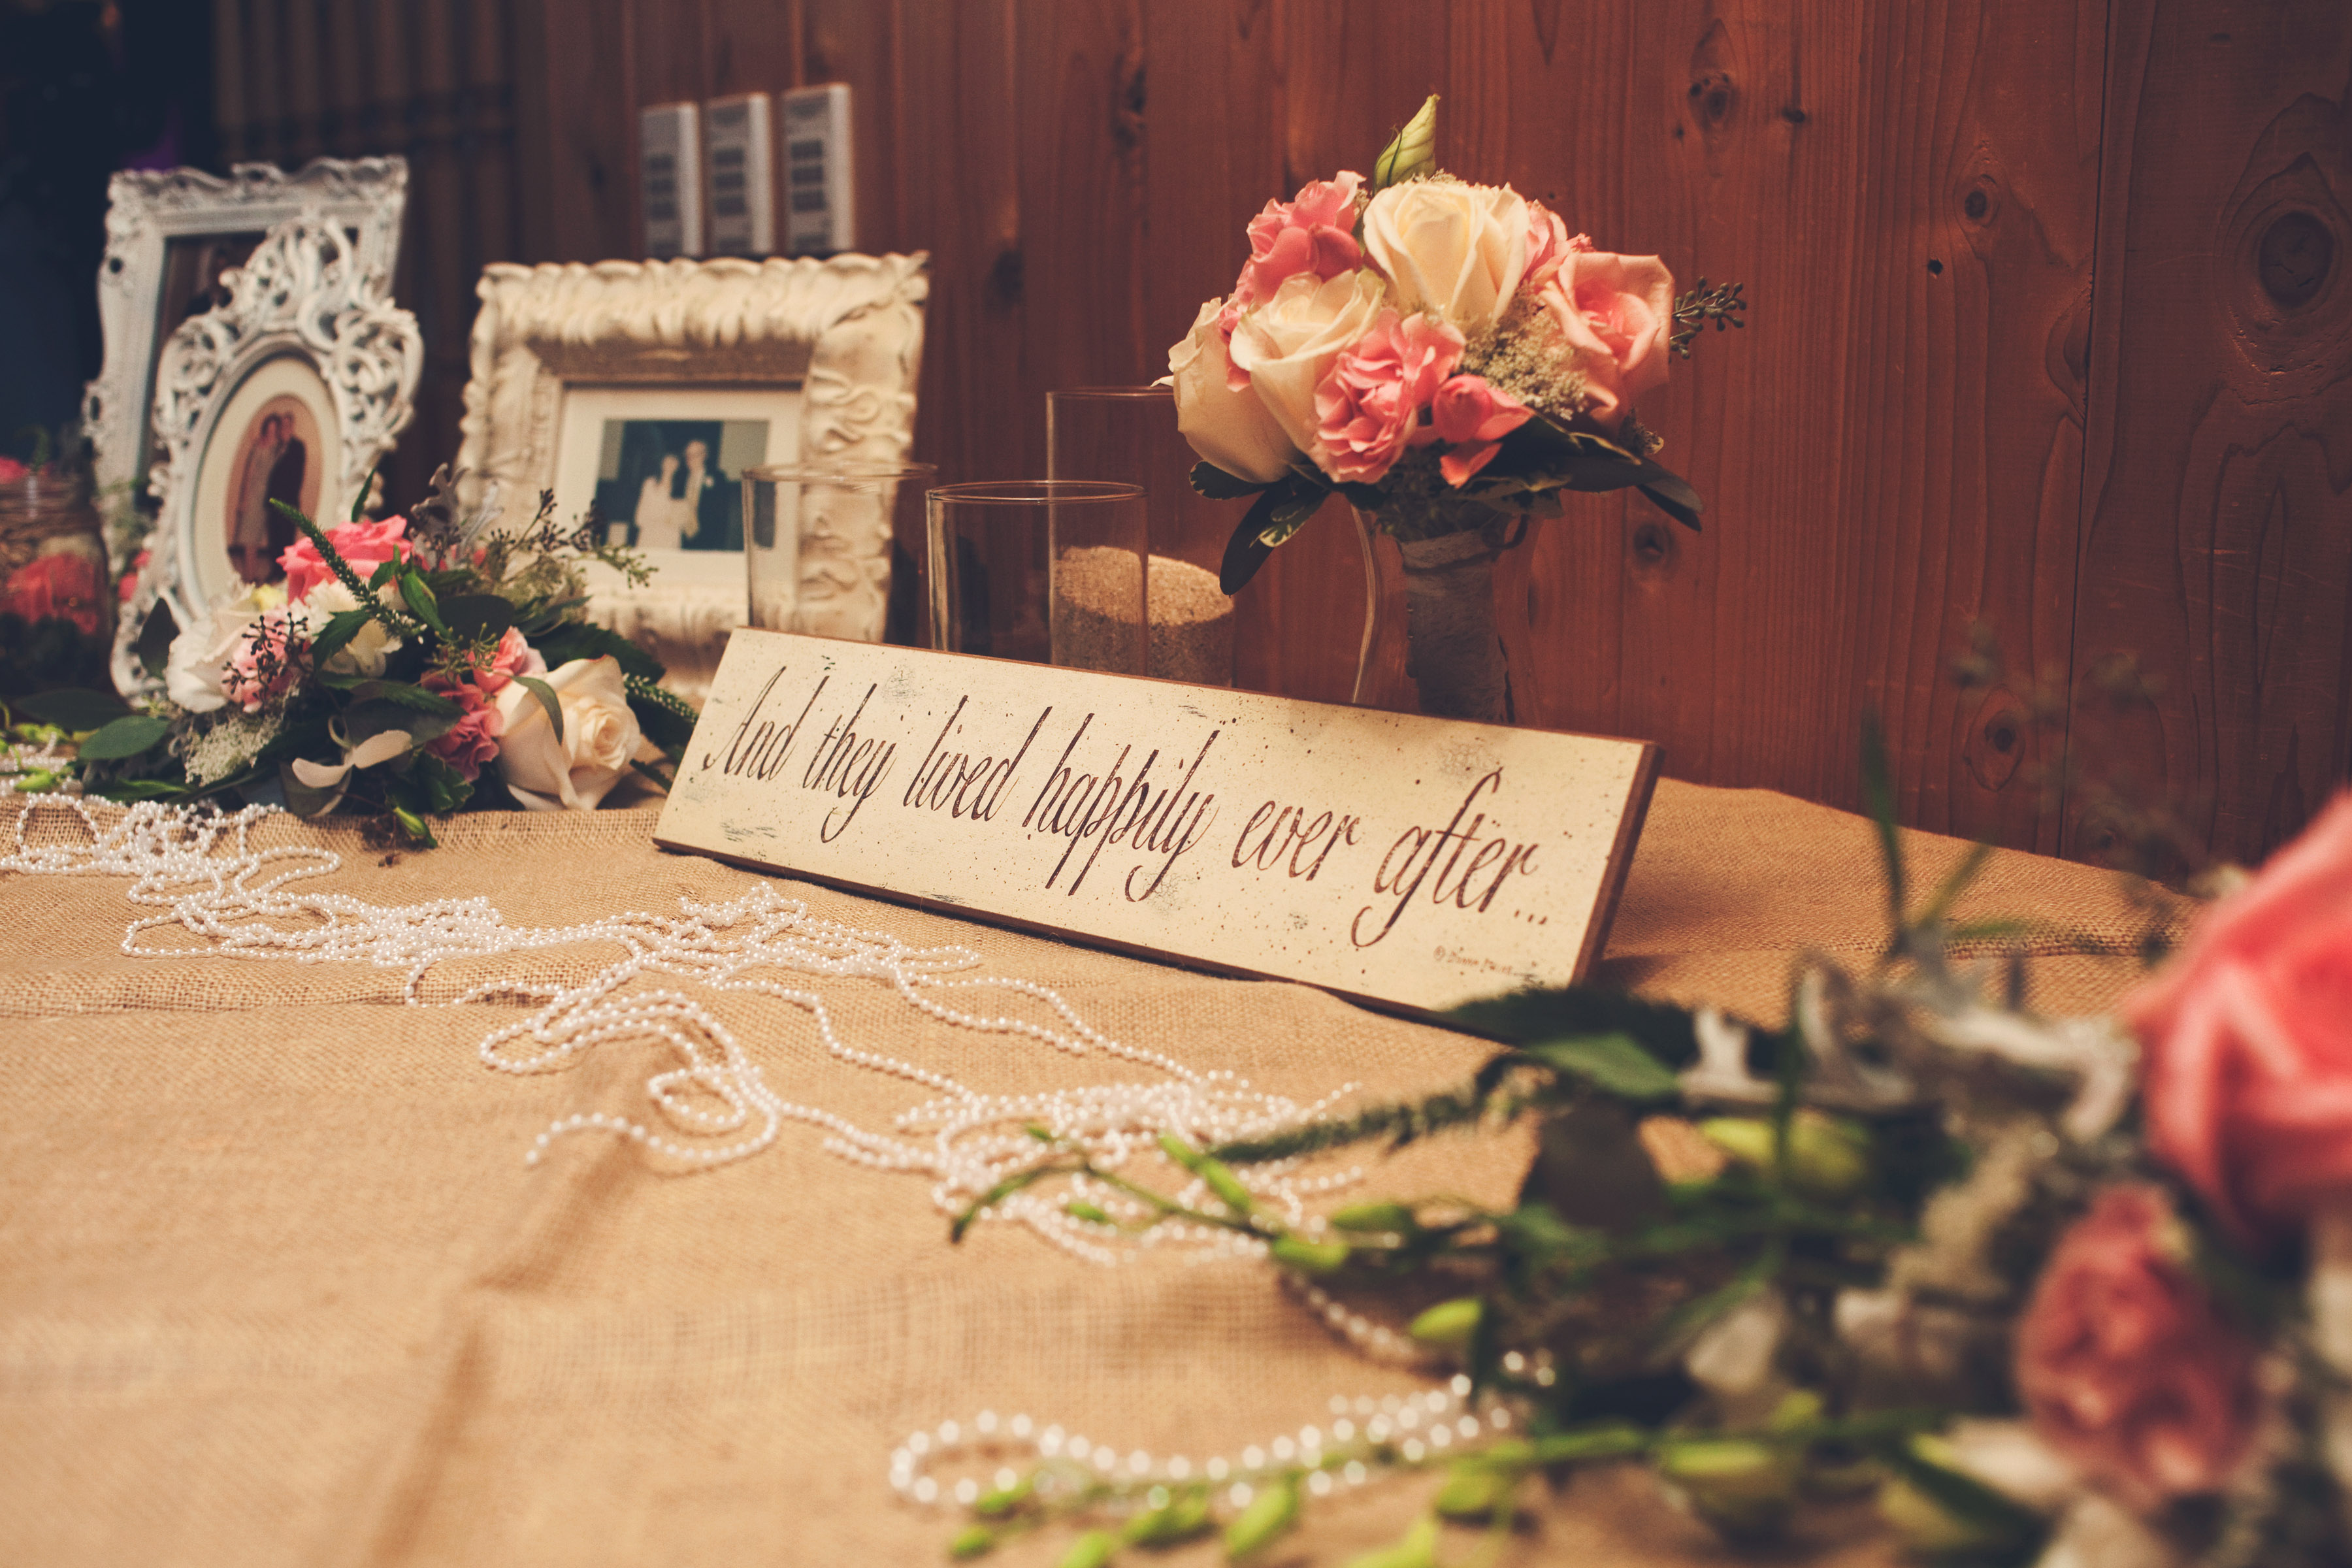 Monetary Wedding Gift Etiquette 2013 : Wedding Registry Etiquette and Do s From the Experts Events by L